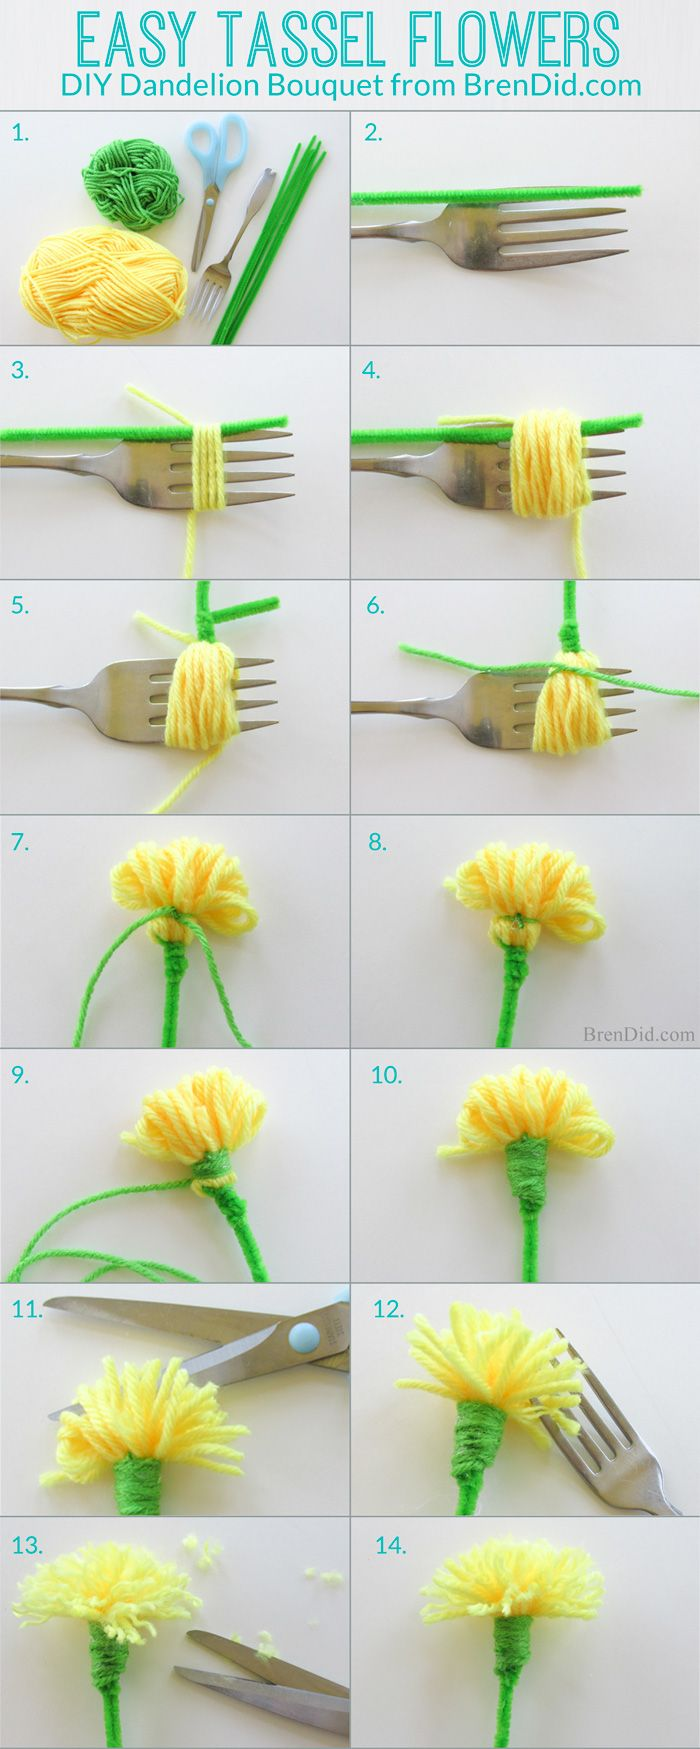 742 best elementary school craft ideas images on pinterest crafts how to make easy tassel flowers mothers day crafts for kidsdiy solutioingenieria